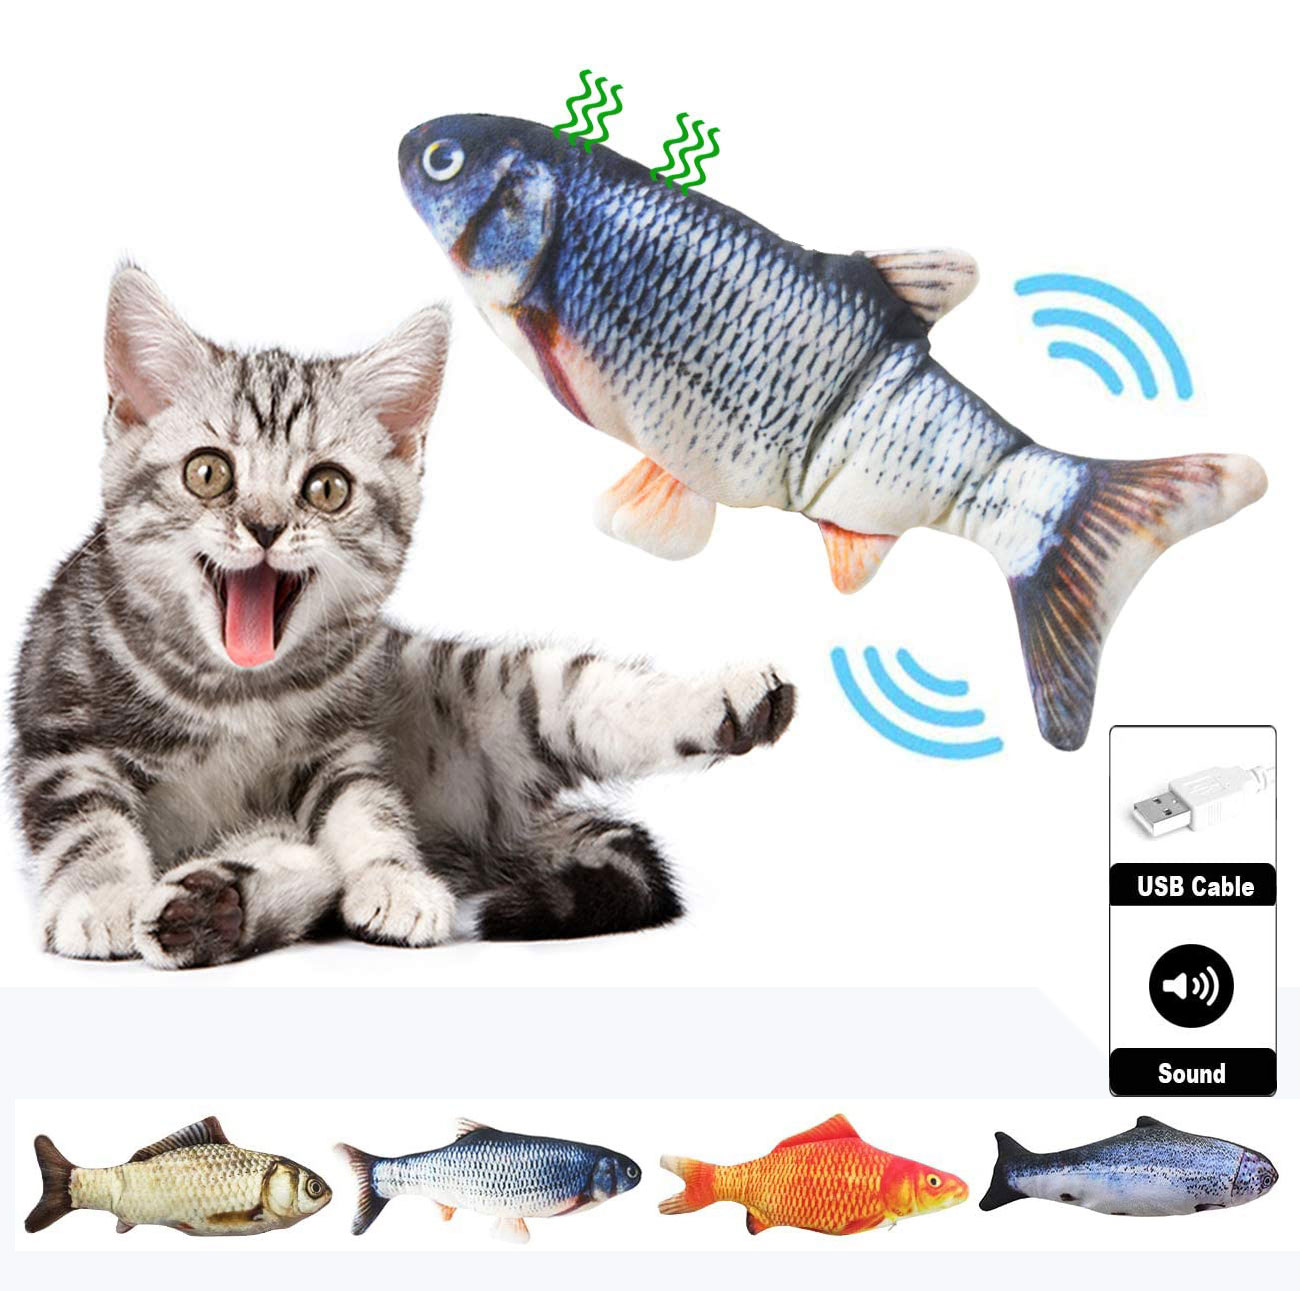 Electronic Cat Toy Electric USB Charging Simulation Fish Toys for Dog Cat Chewing Playing Biting Supplies Dropshiping